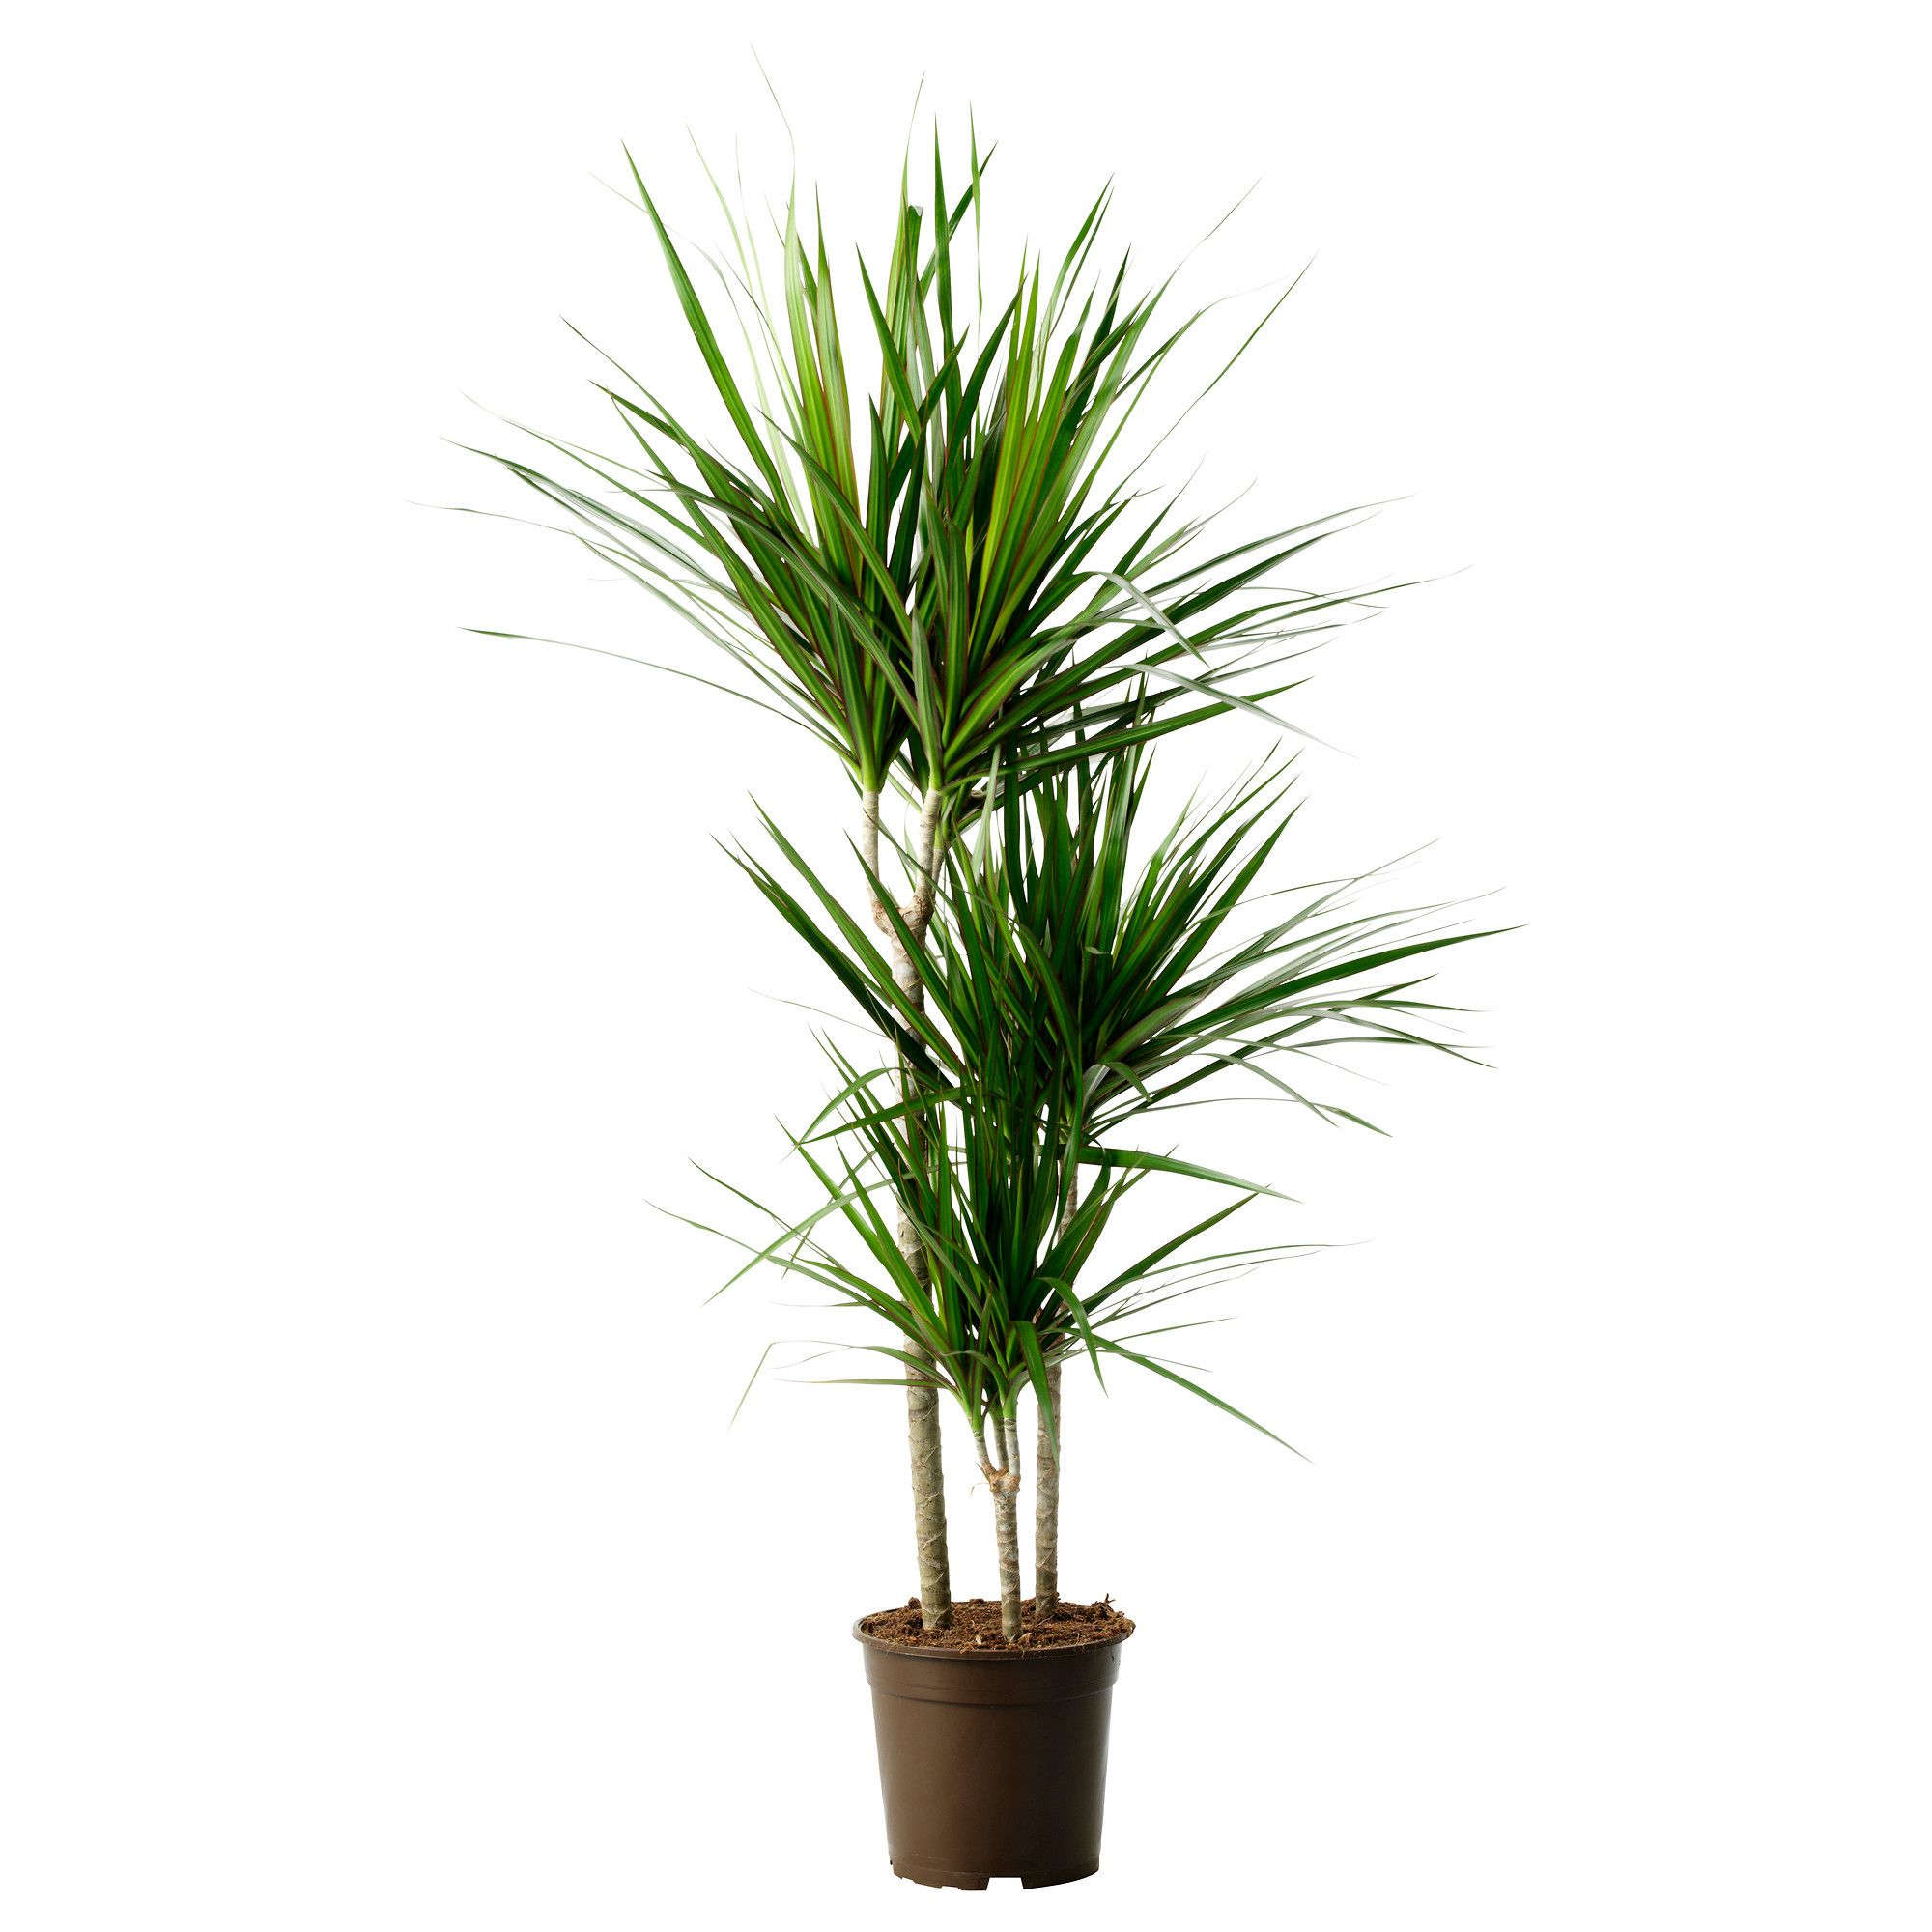 DRACAENA MARGINATA Potted plant, Dragon tree, 3-stem $49.99 ...